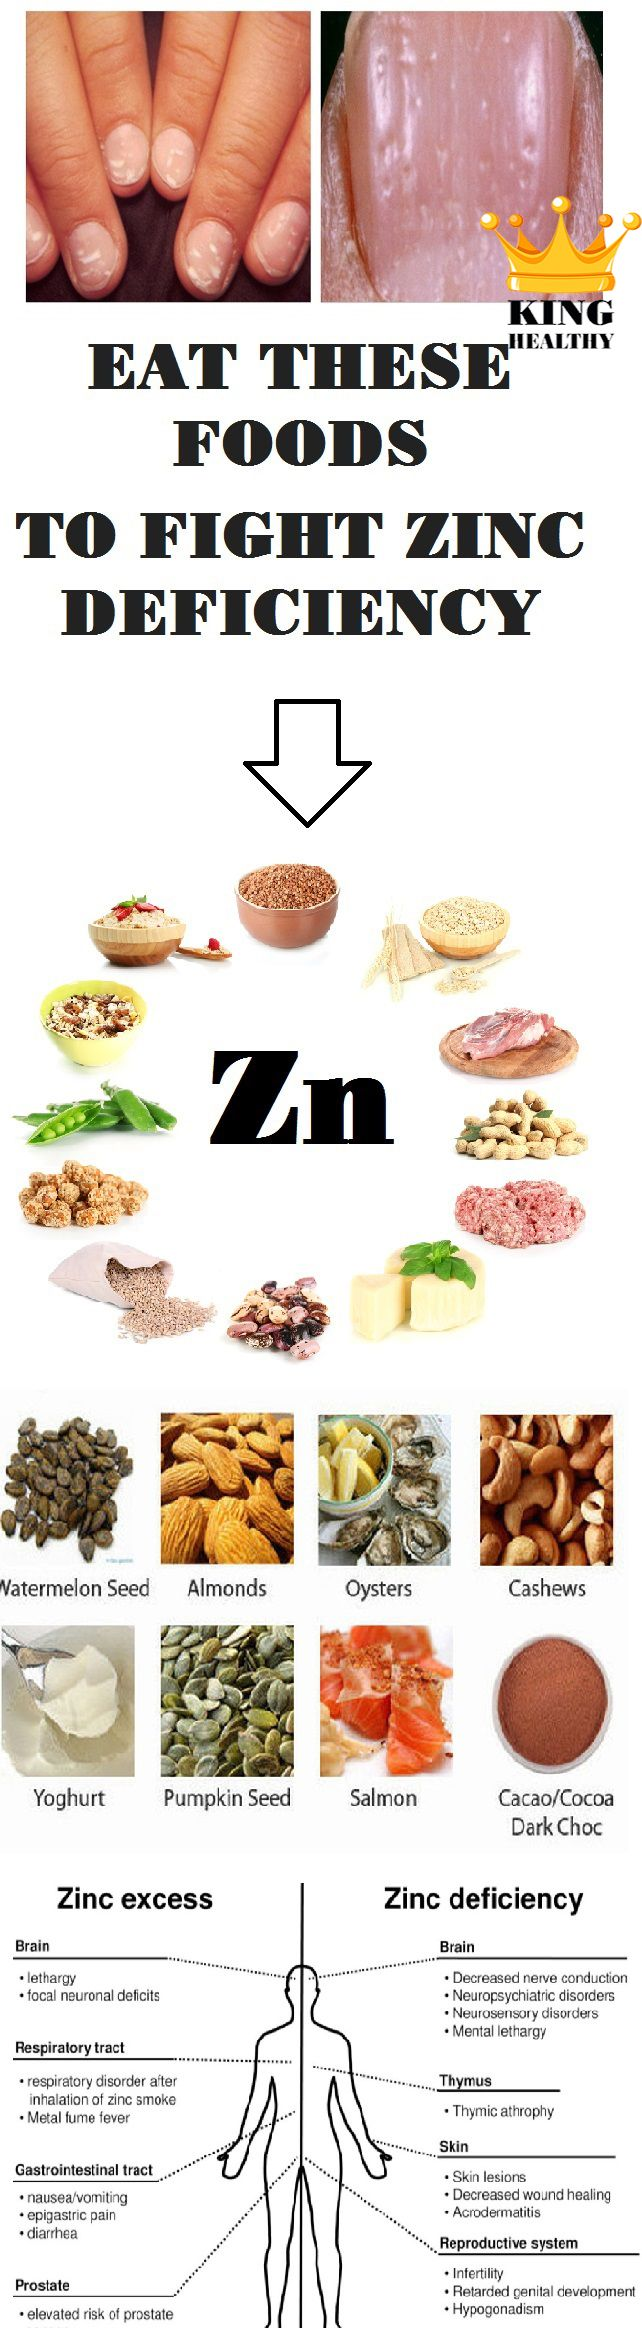 Eat These Foods To Fight Zinc Deficiency - King Healthy Life